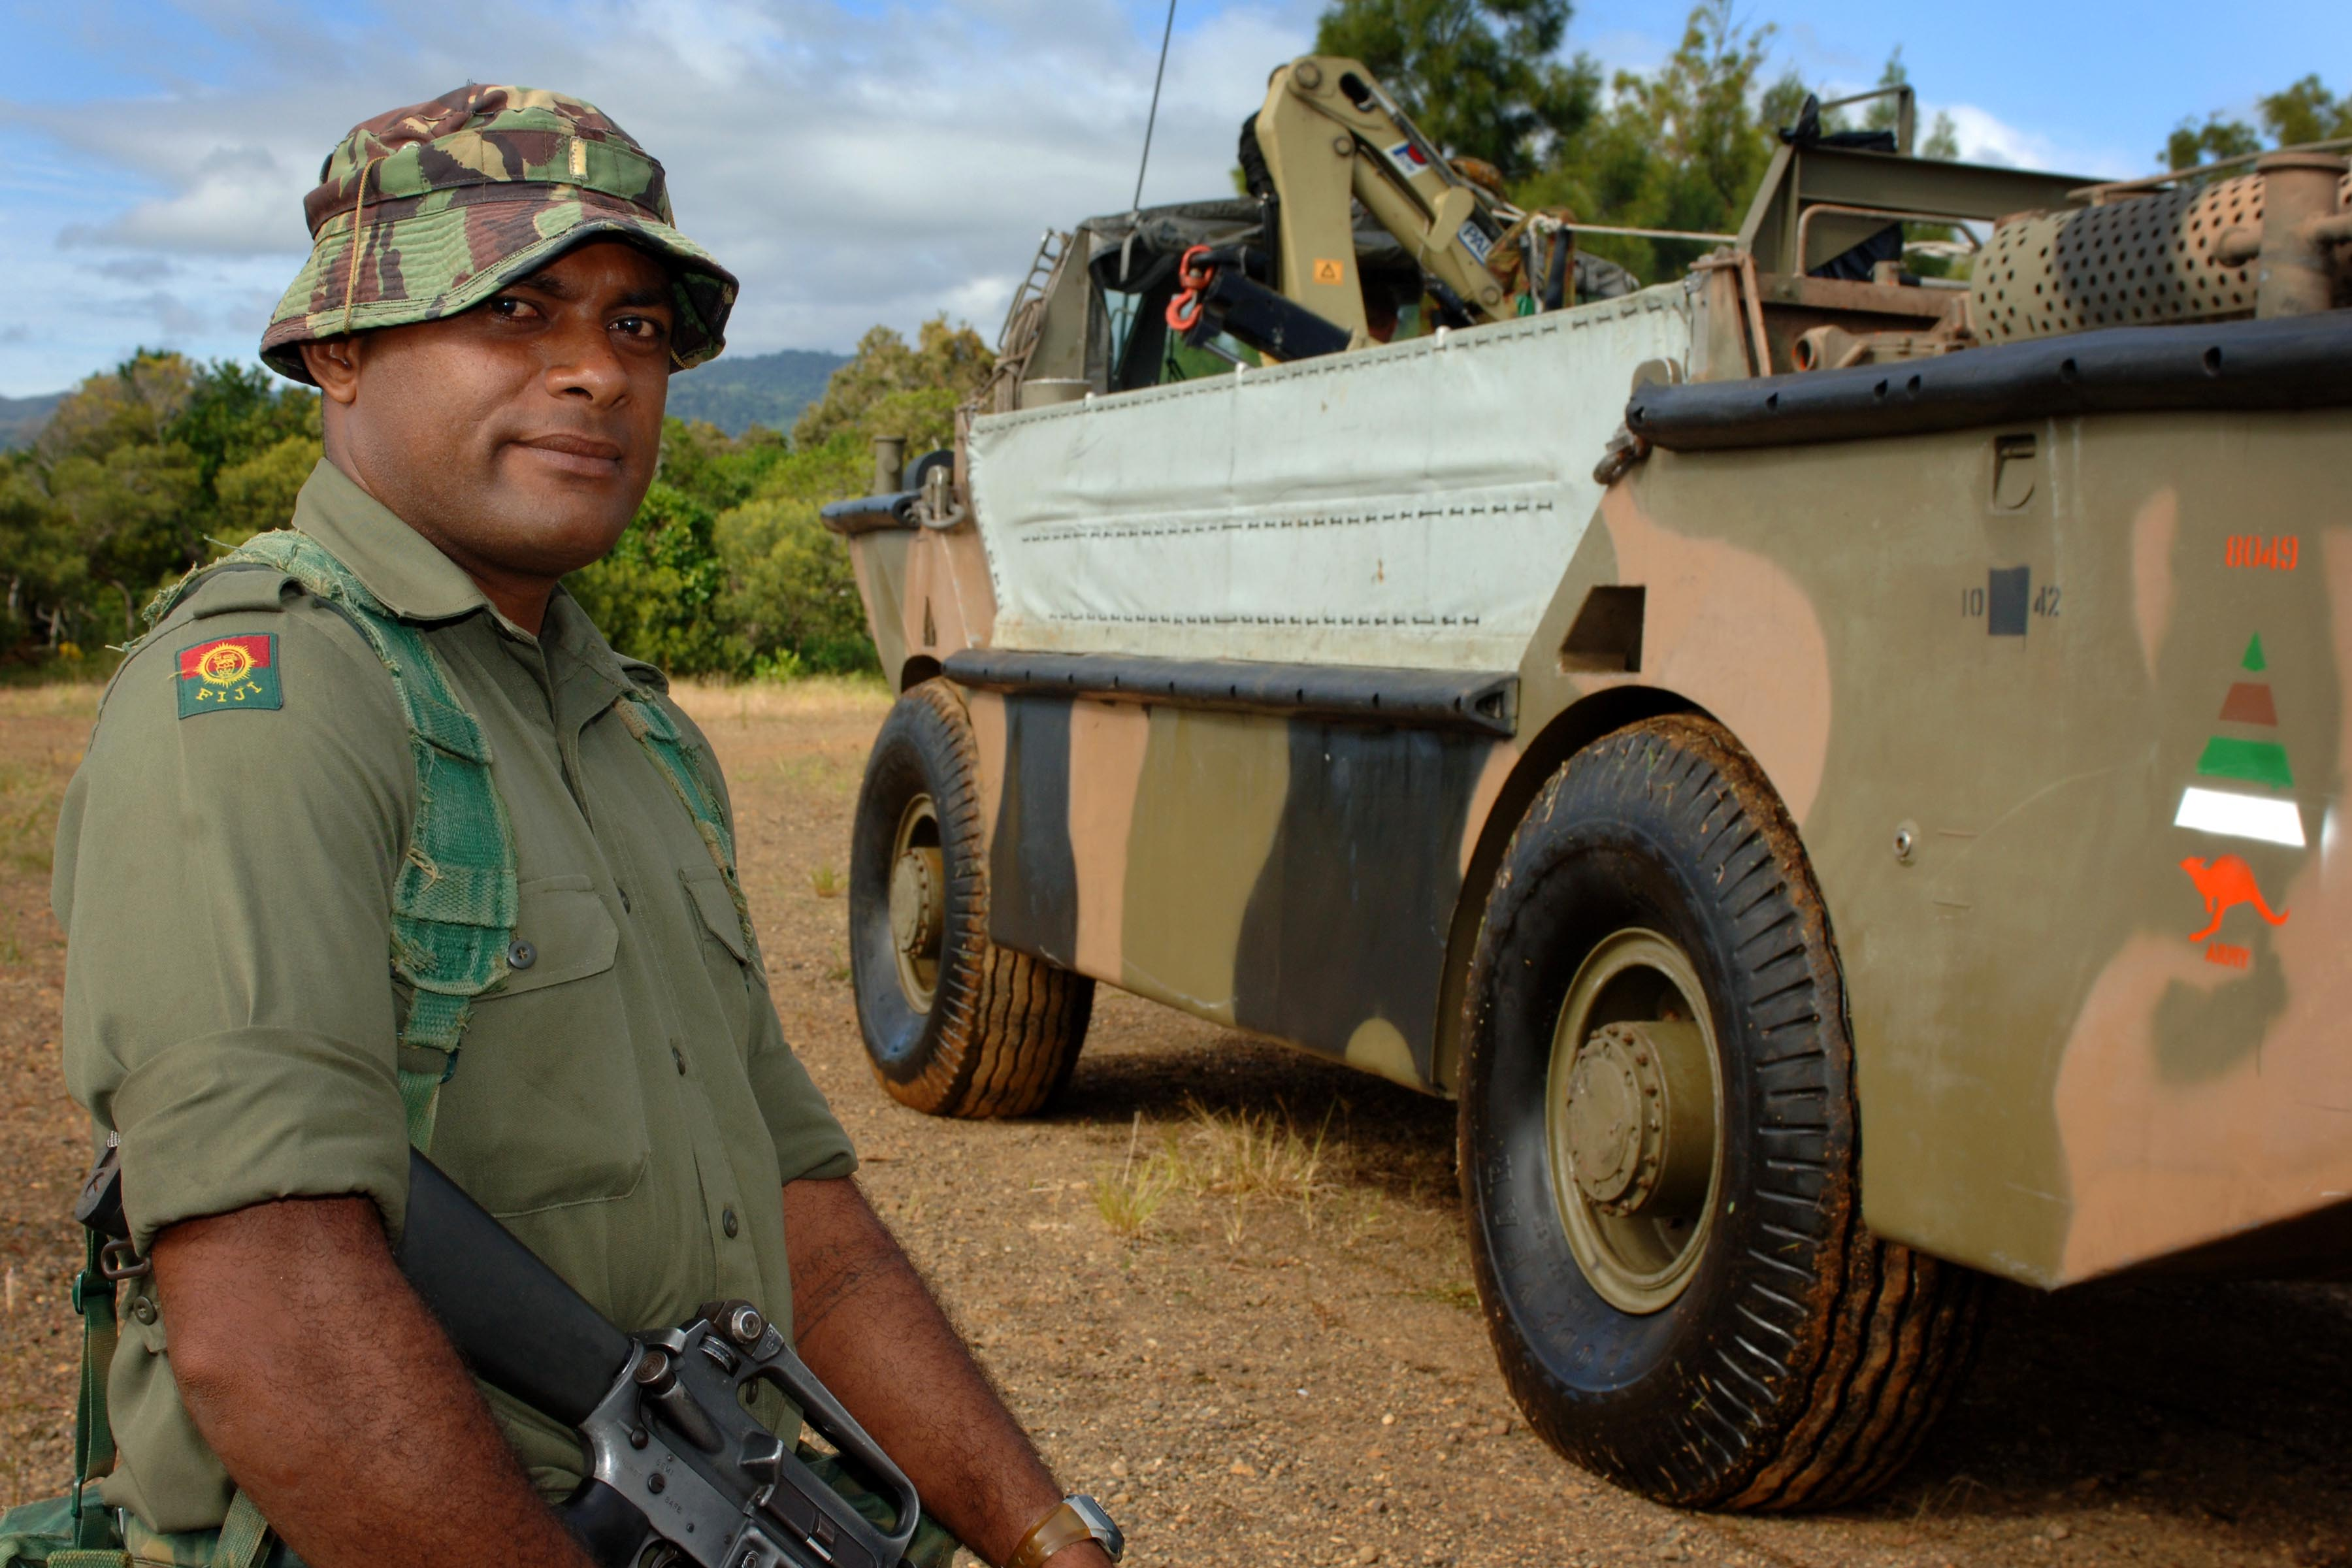 Fijian Army Private Qiri desembarked from Lighter Amphibious Resupply Cargo (LARC) at Canala Bay